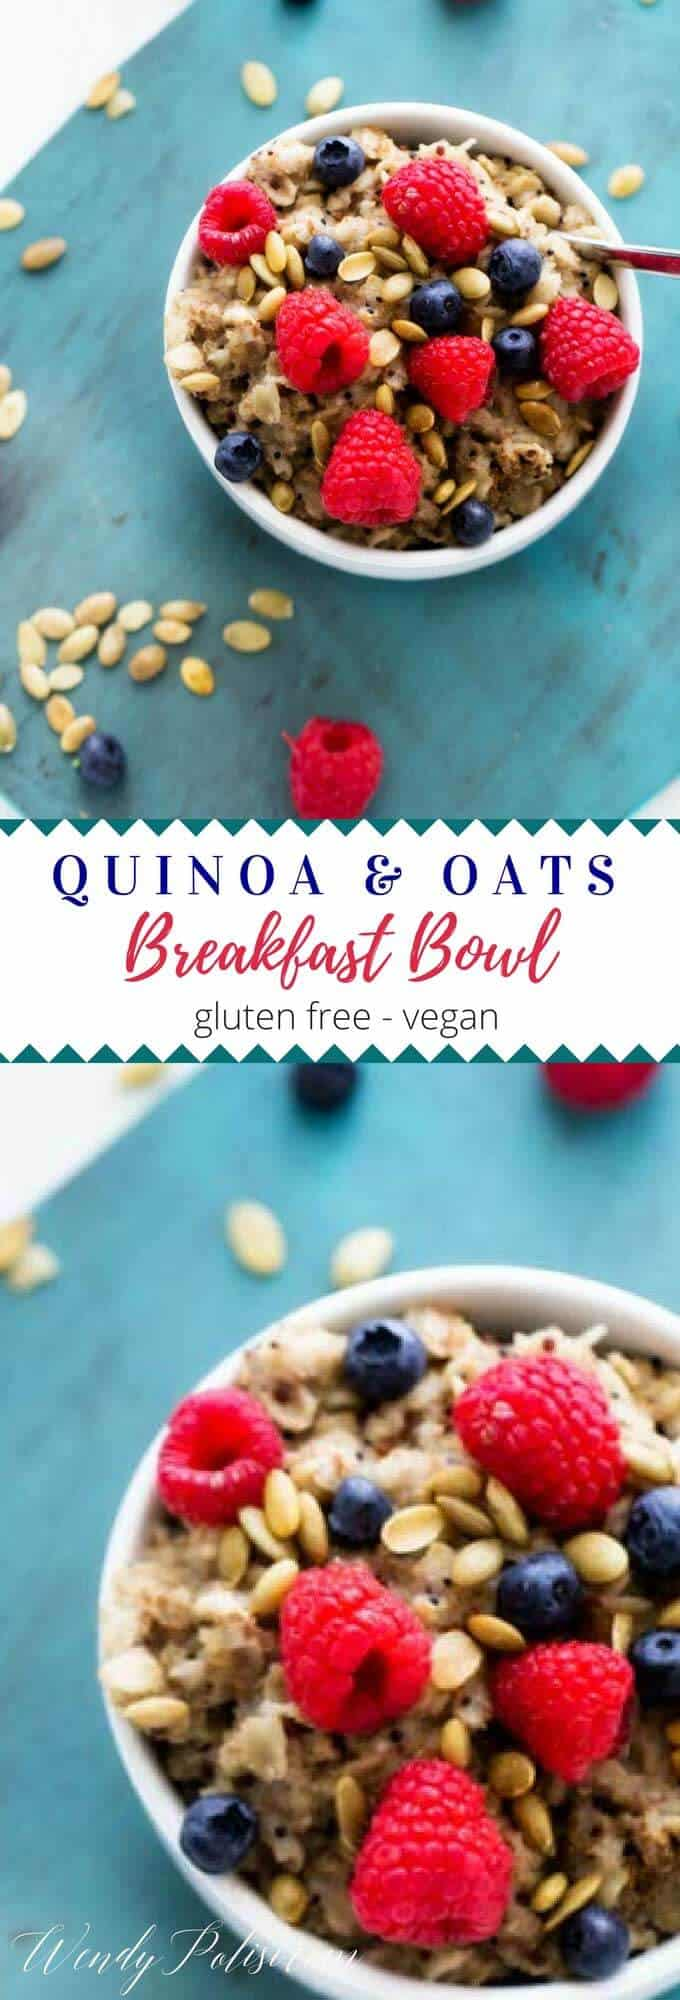 This Quinoa Oatmeal Breakfast Bowl is the perfect clean eating breakfast to fuel your day! Made with almond milk, this vegan quinoa breakfast recipe adds a touch of delicious to your mornings. #quinoa #quinoabreakfast #healthybreakfast